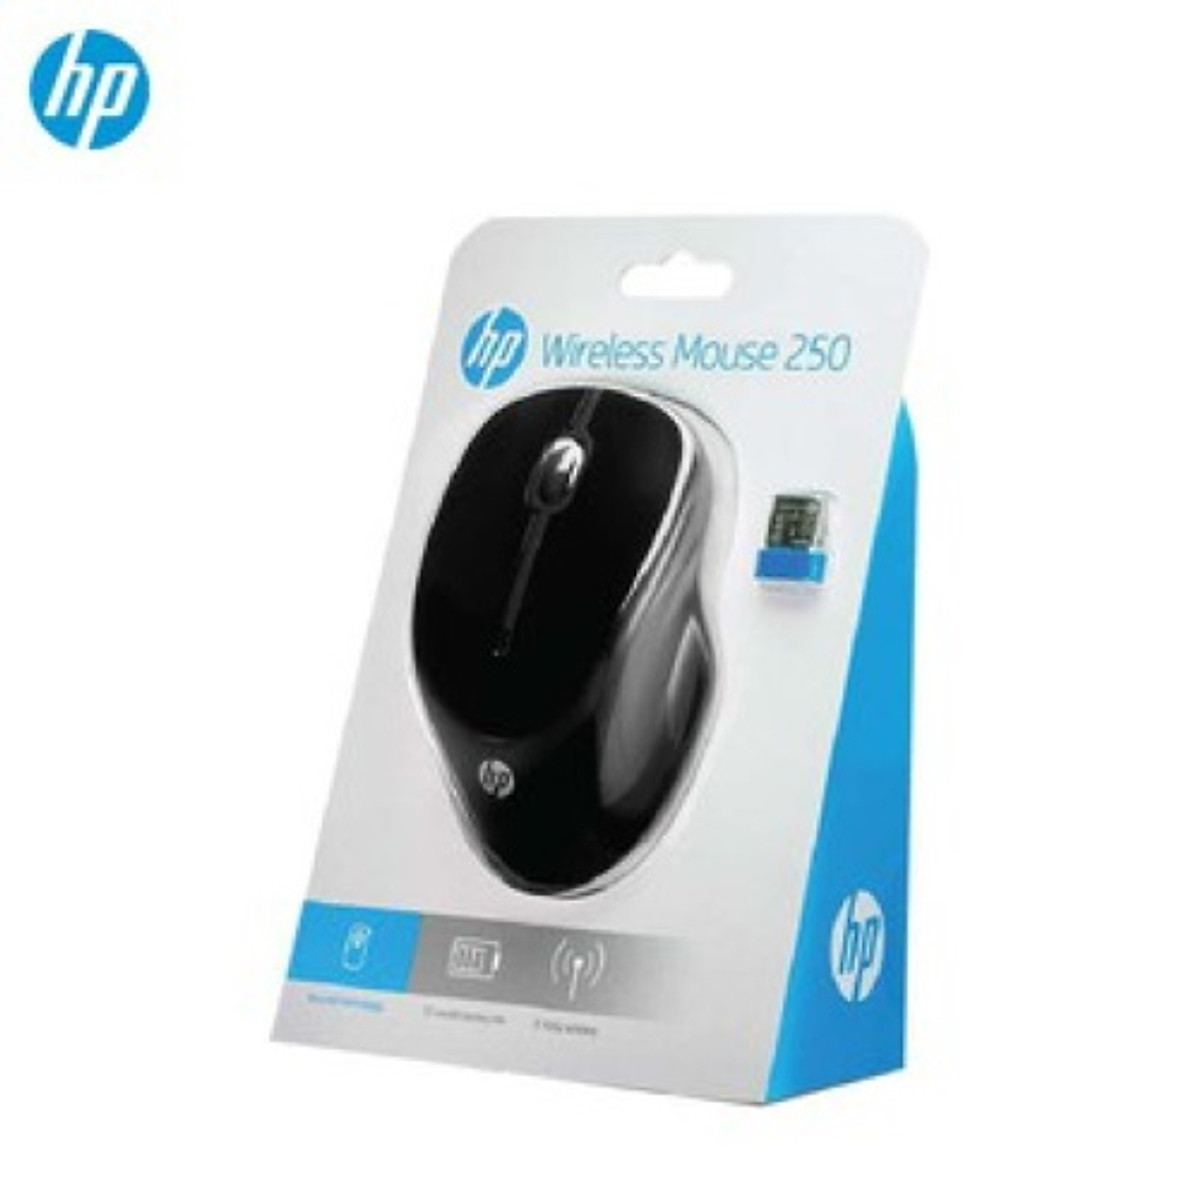 Chuột HP Wireless Mouse 250